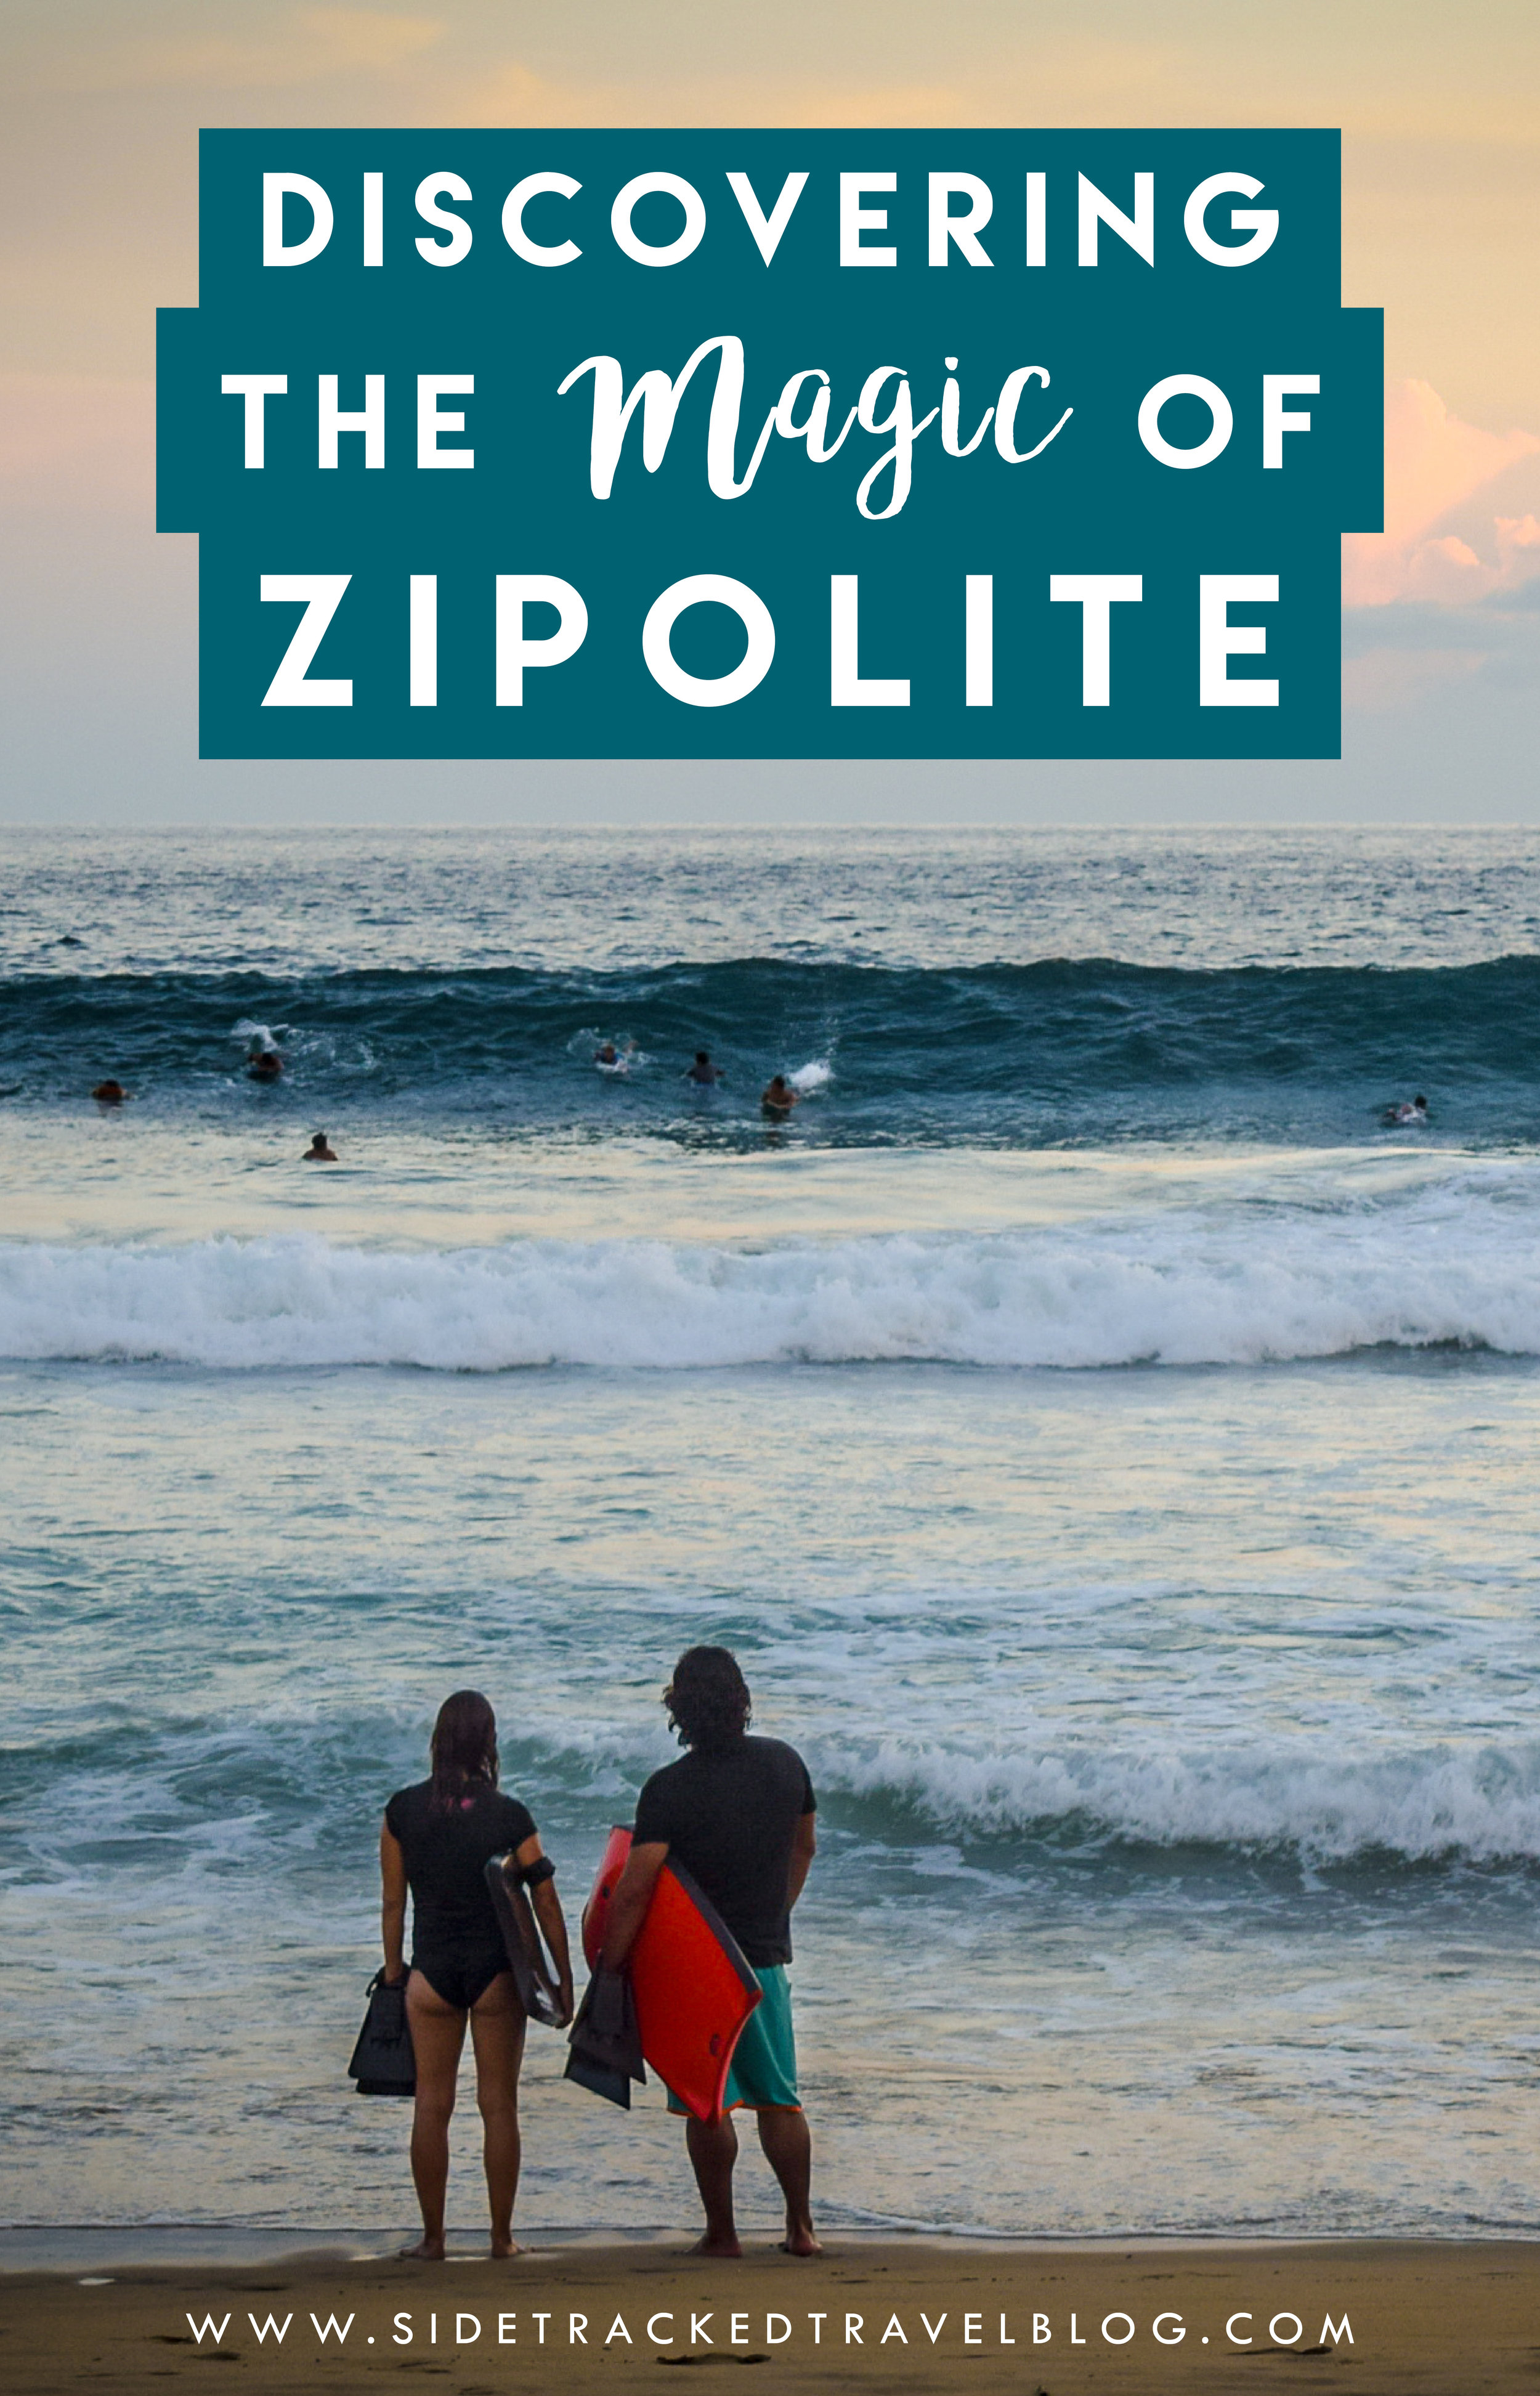 You came to Zipolite with no expectations, just the longing to relax. What you'll leave with are enduring memories of a warm place that feels like something out of a dream, from a different planet perhaps, where time seems to go by just a little bit slower and life is beautifully simple.